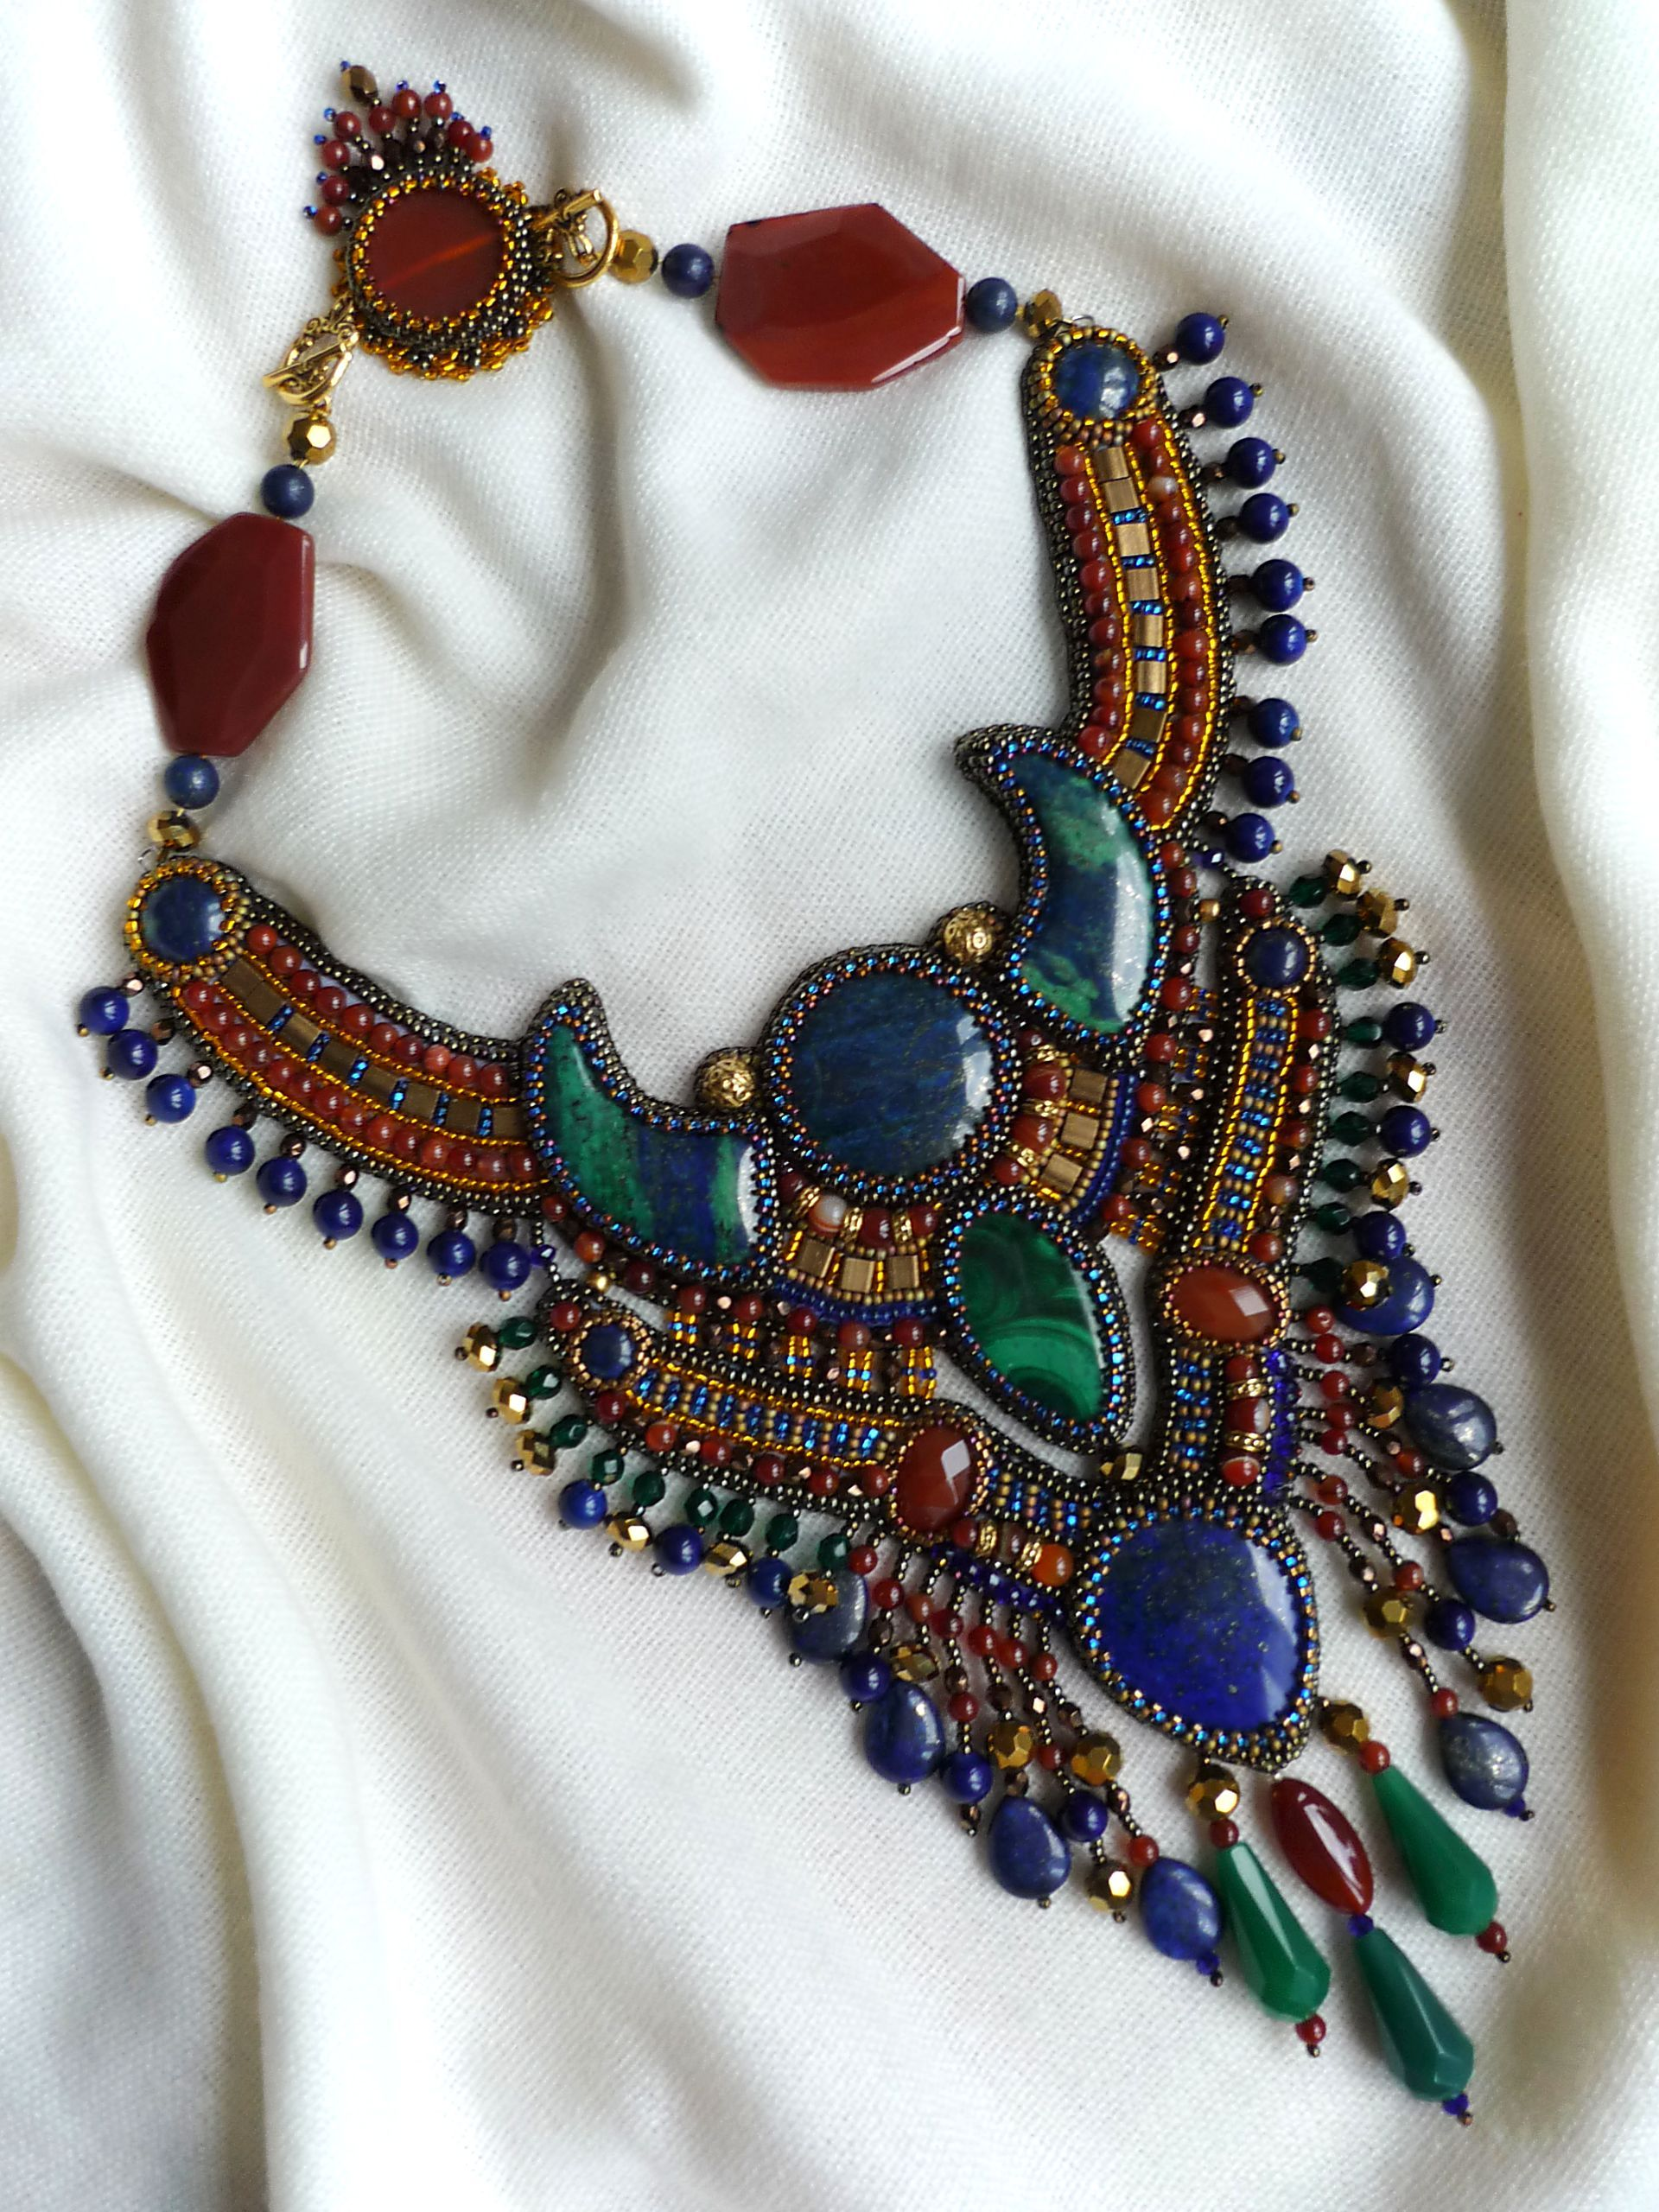 Amazing embroidered jewelry by Irina Chikineva